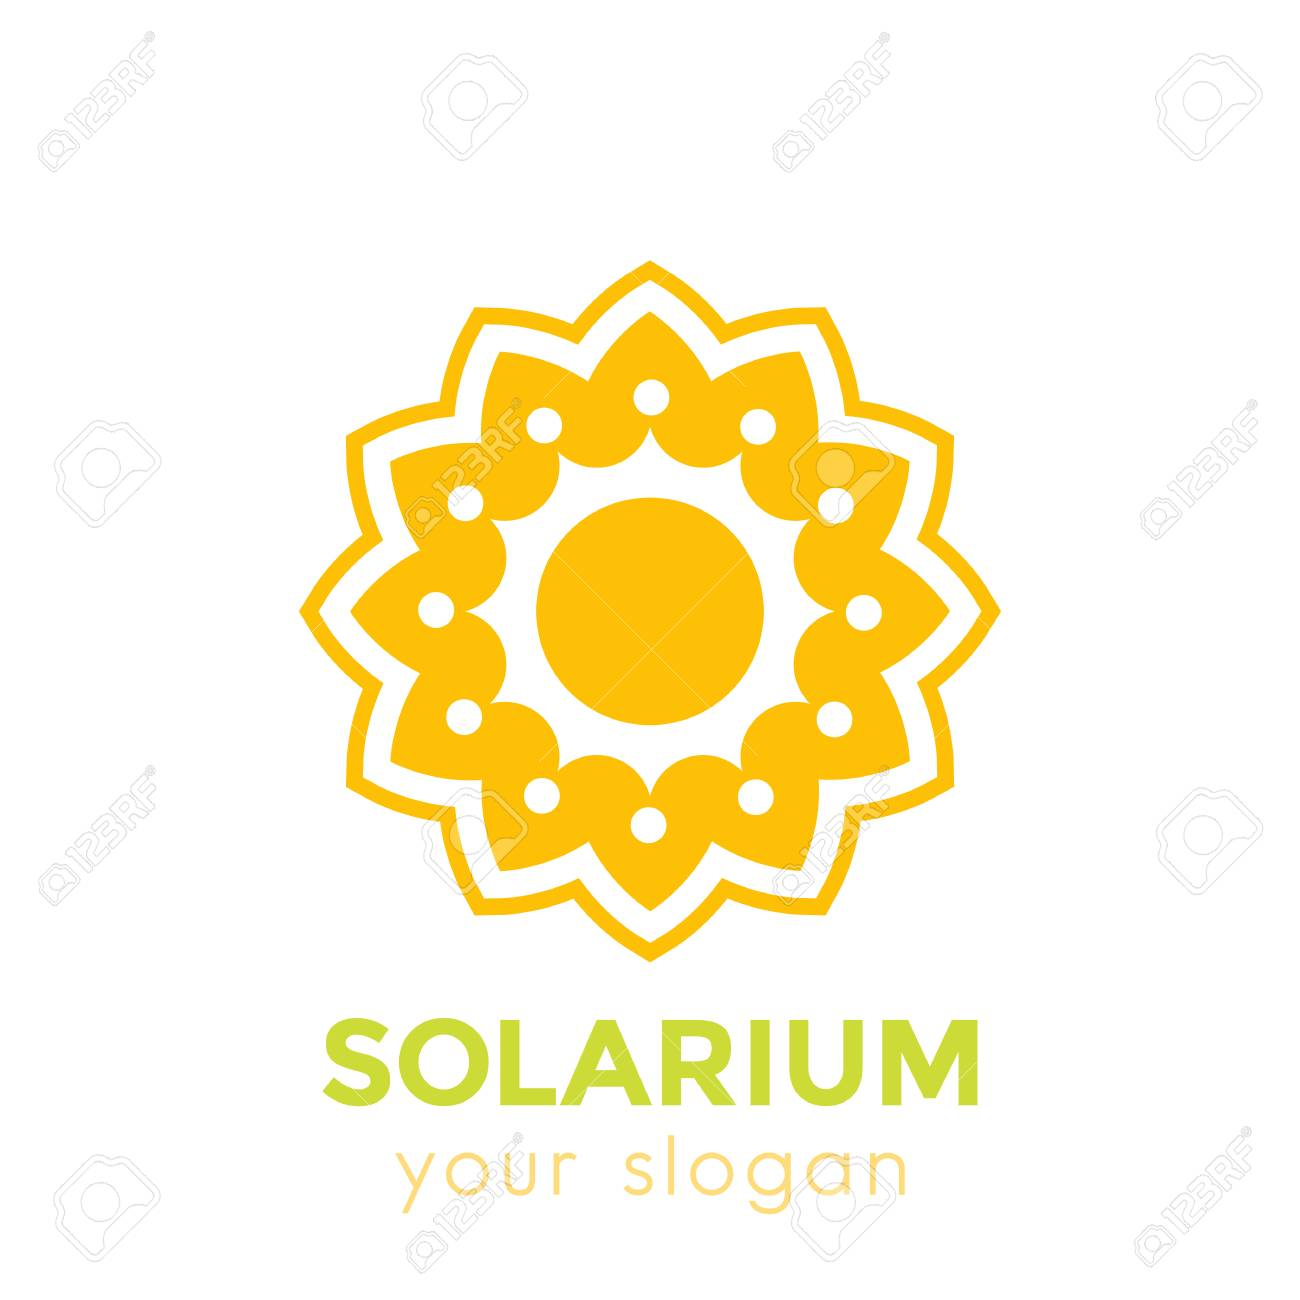 Solarium Logo With Sun And Flower On White Royalty Free Cliparts